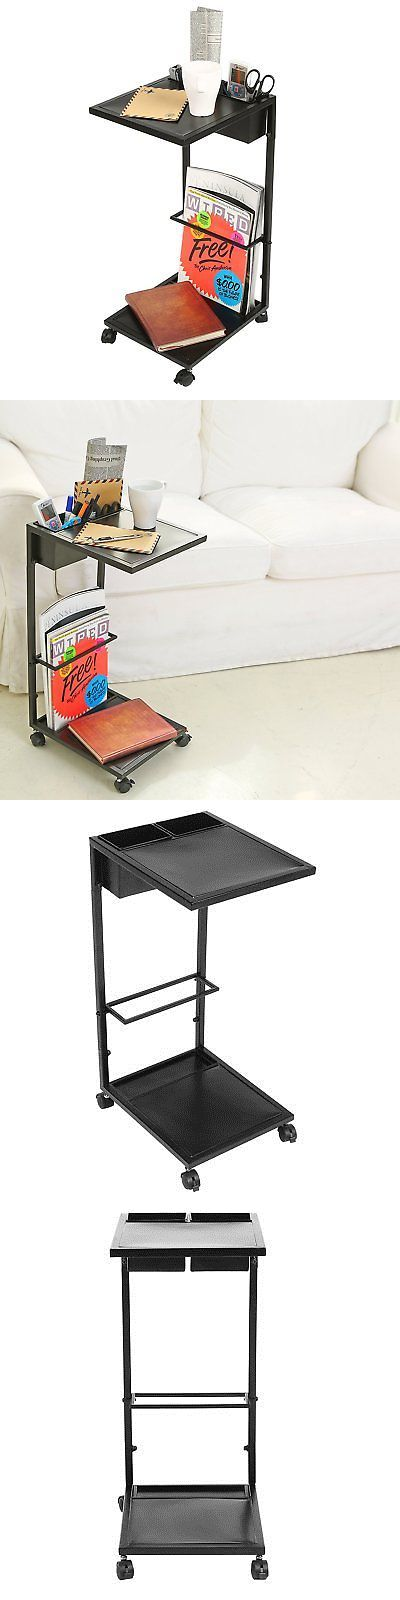 Magazine Racks 38223: Modern Black Metal Rolling Overbed Table With Magazine Rack, 2 Removable And 4 -> BUY IT NOW ONLY: $53.43 on eBay!